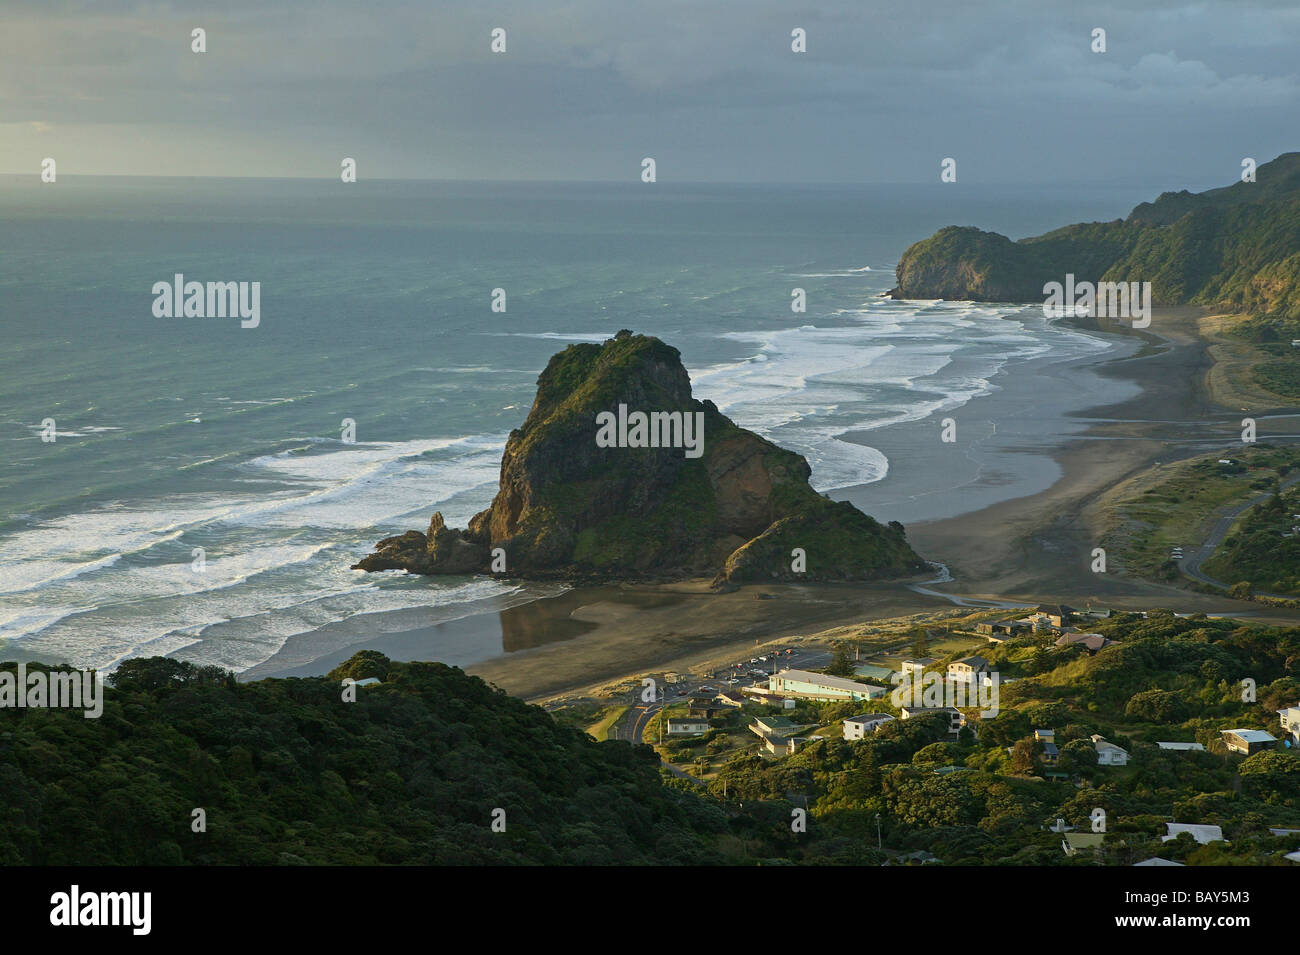 Piha Beach and Lion Rock, west coast near Auckland, New Zealand Stock Photo